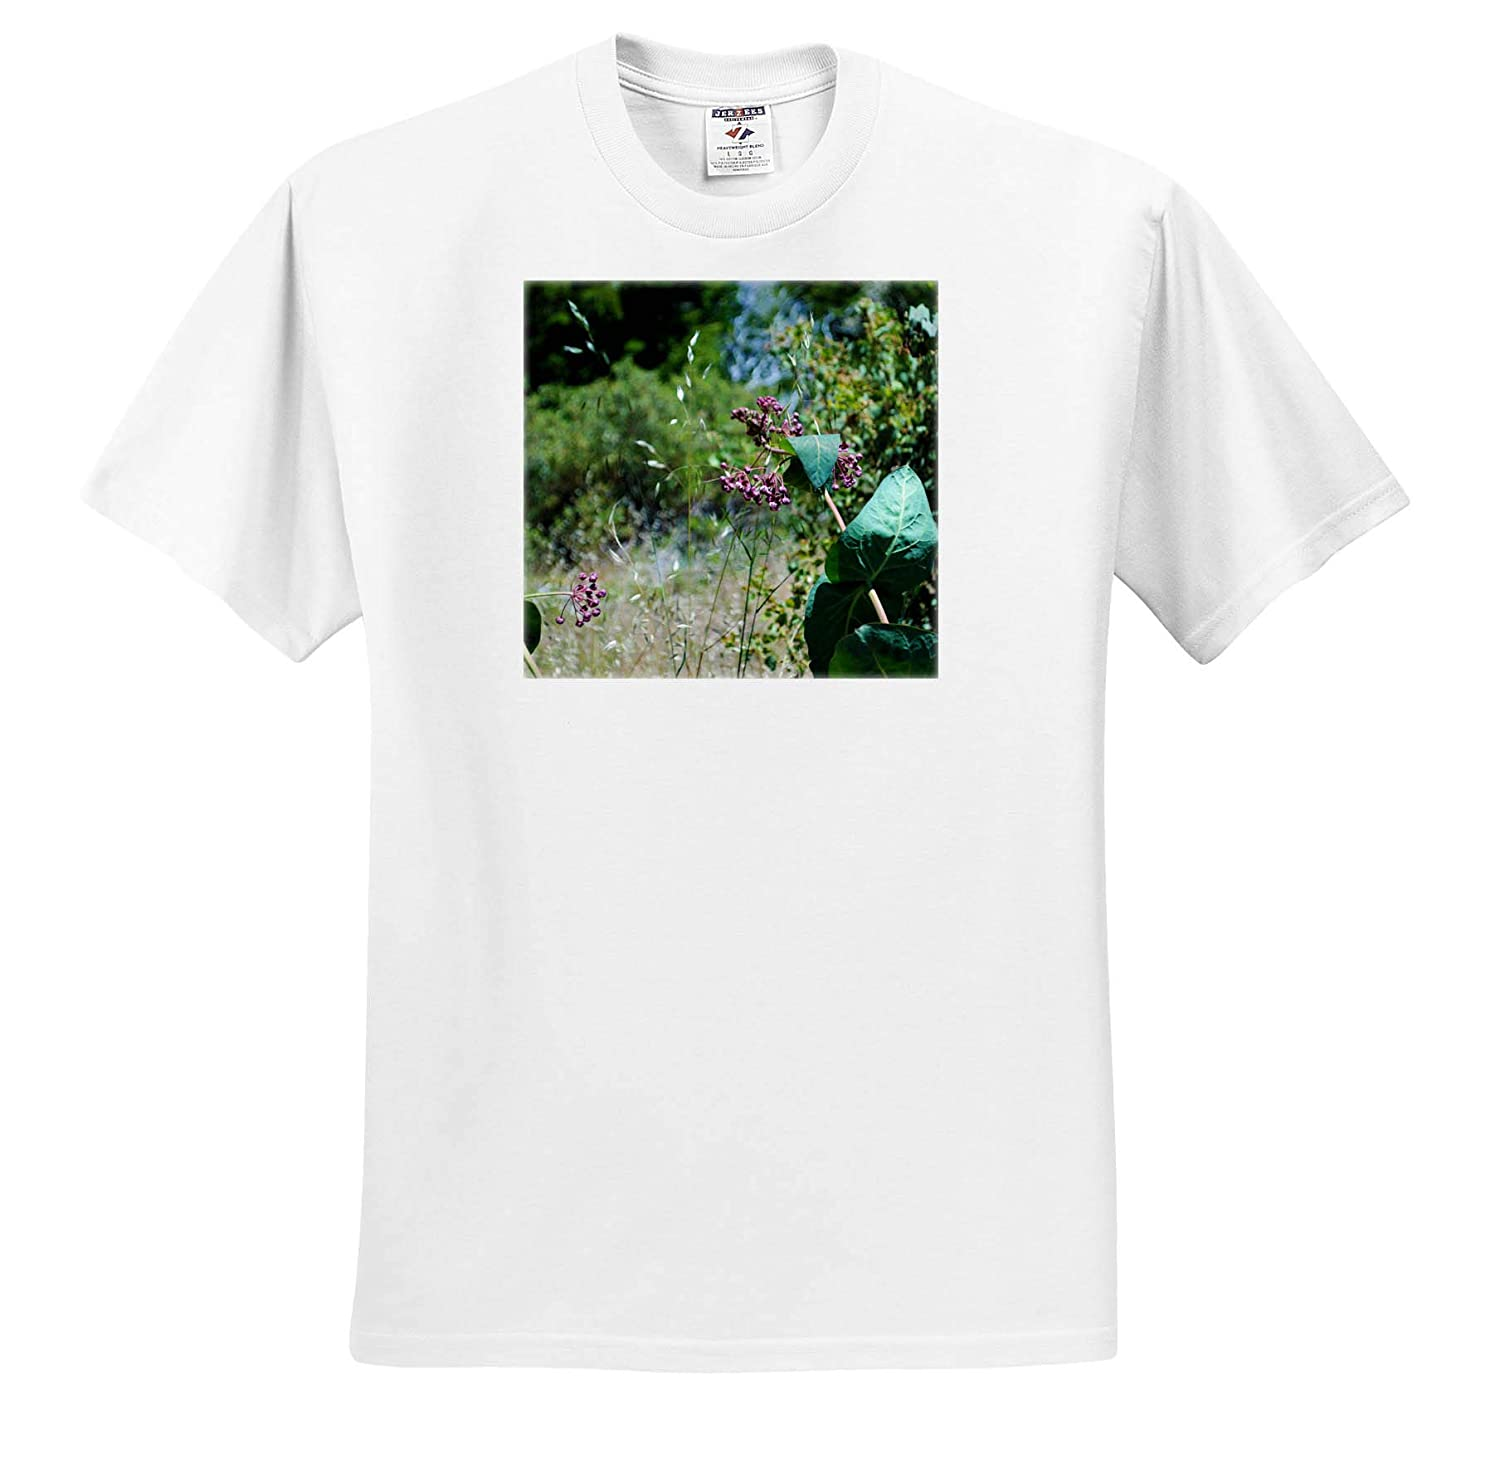 3dRose Jos Fauxtographee T-Shirts A Berry Like Flower in Yosemite with deep Green Leaves Flower in Yosemite